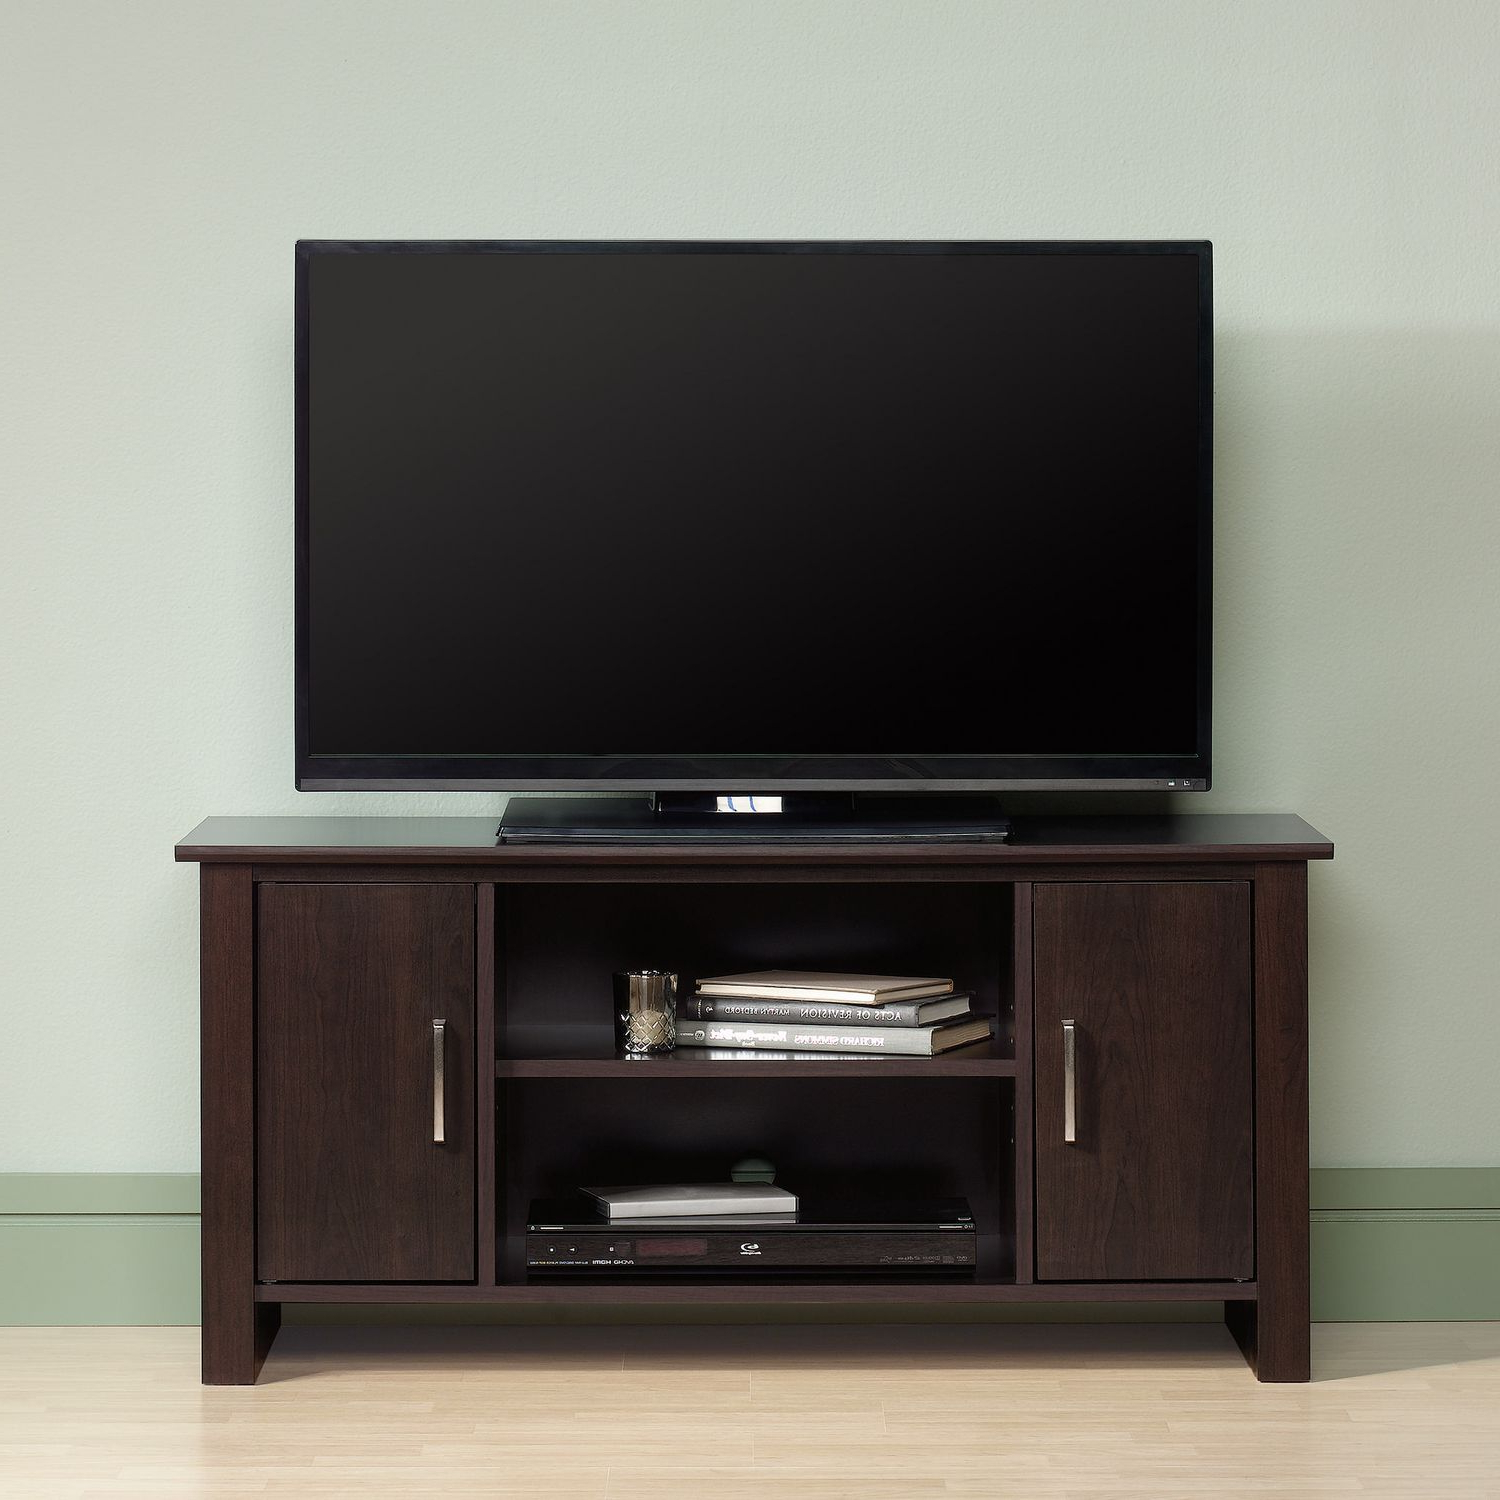 Bedford Tv Stands Inside Most Up To Date Sauder® Tv Stand, Cinnamon Cherry Finish,  (View 2 of 20)